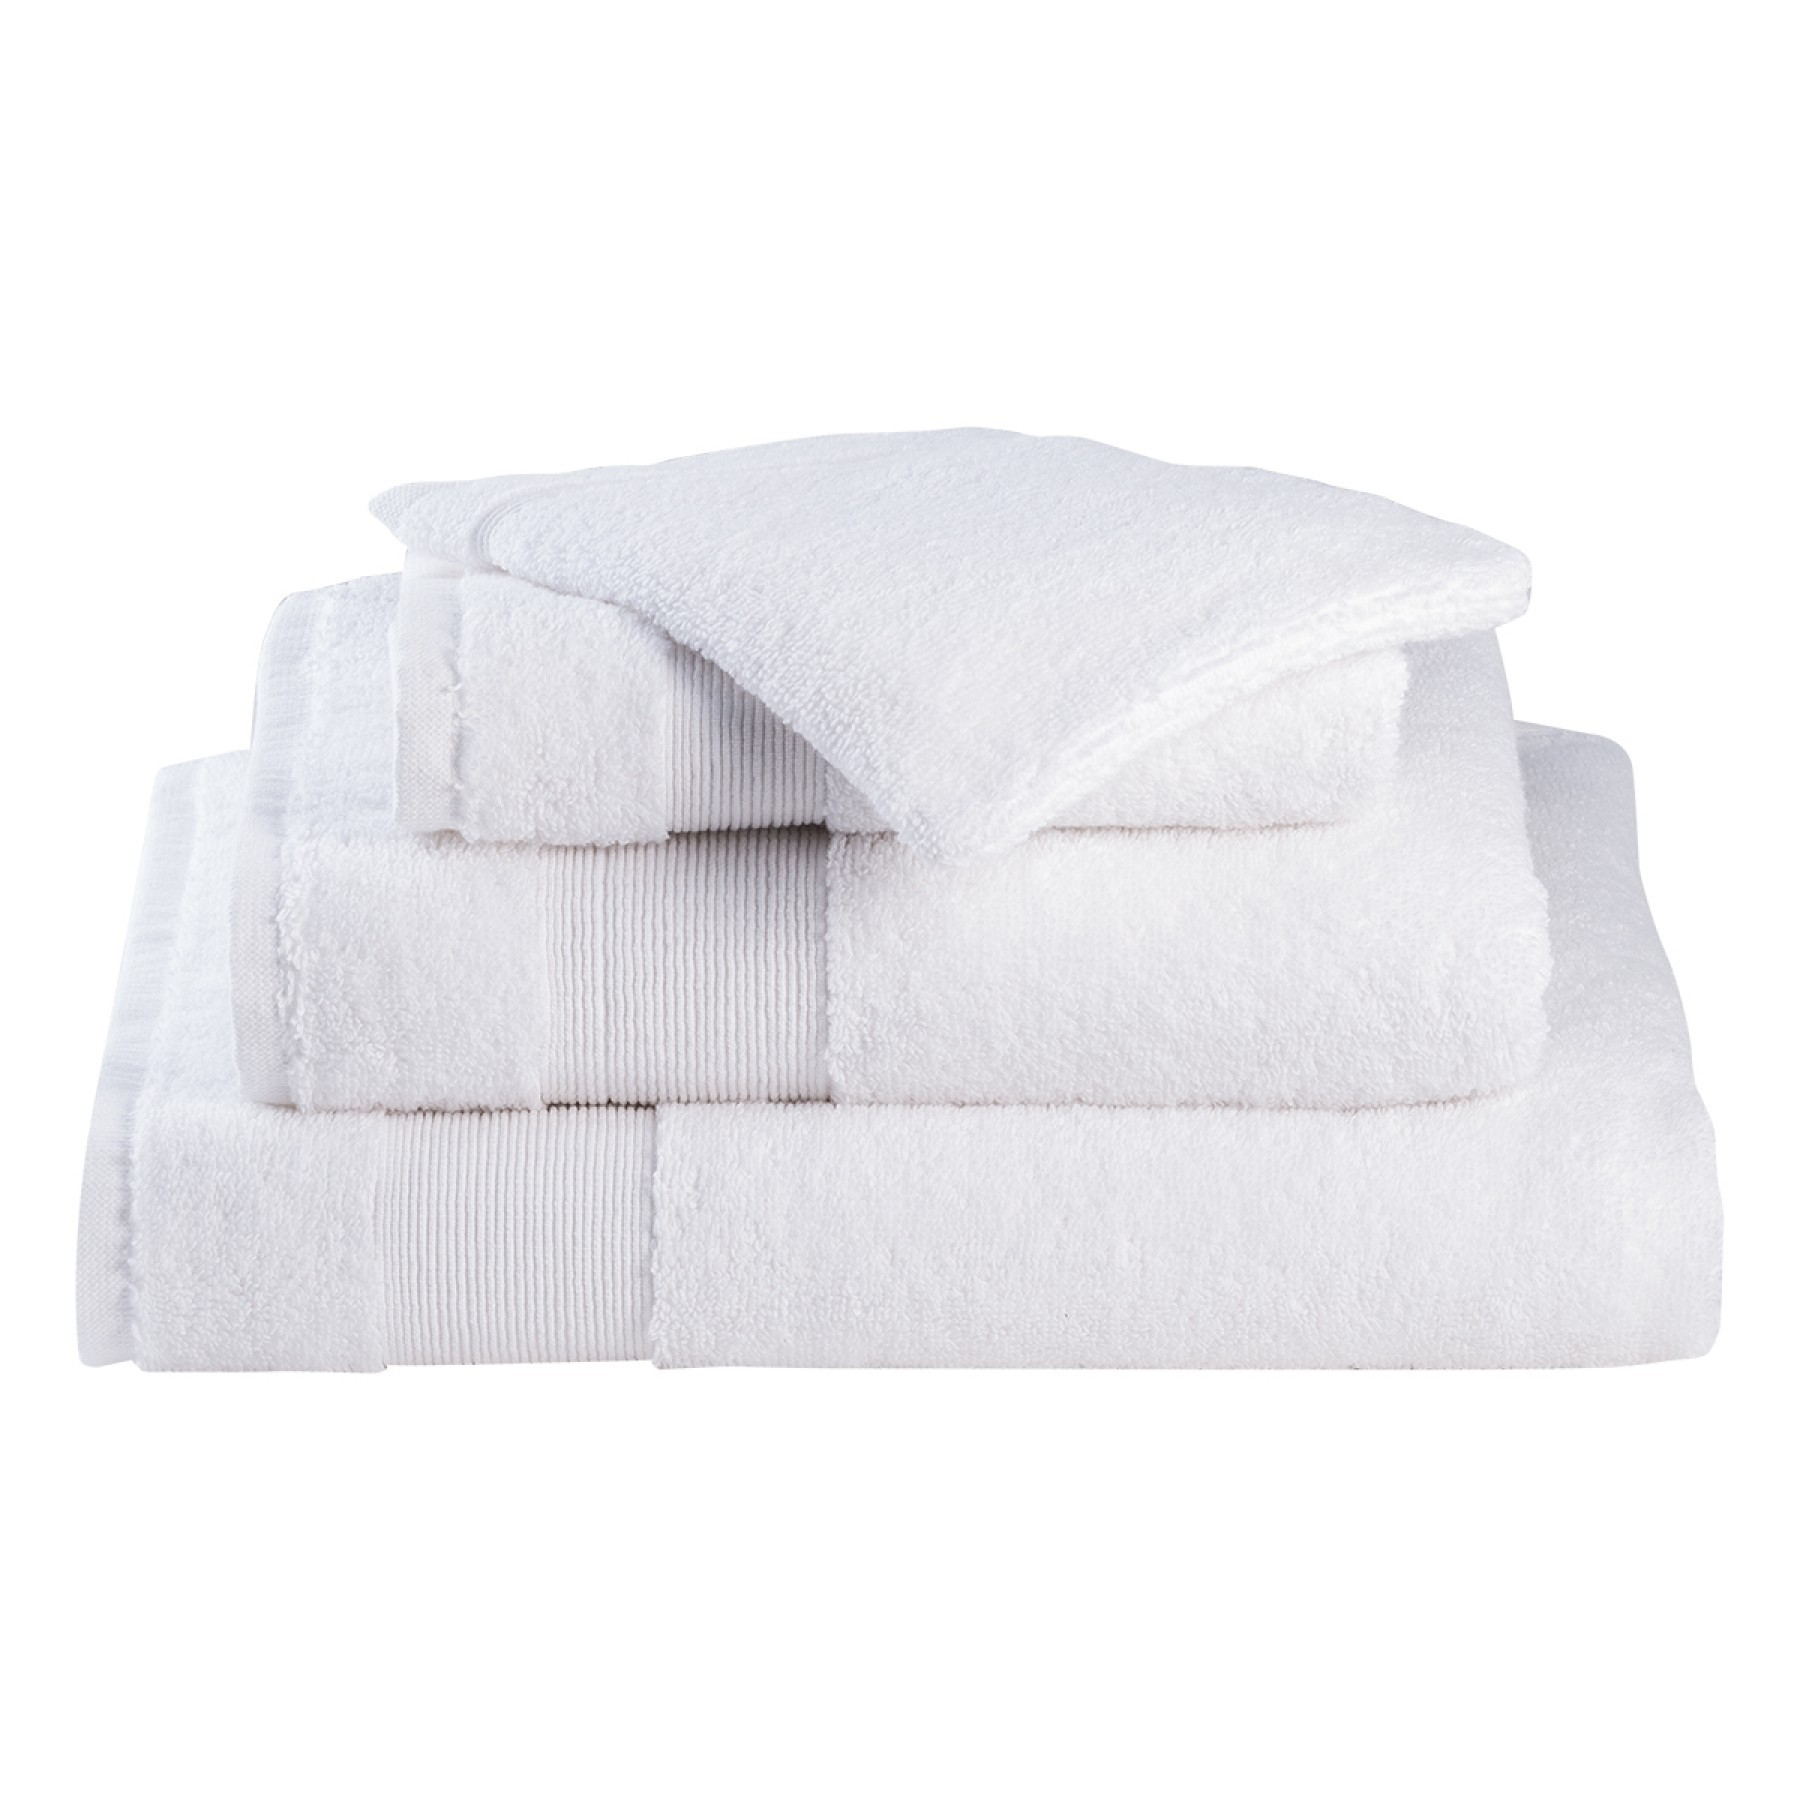 Livello Washand Home Collection White